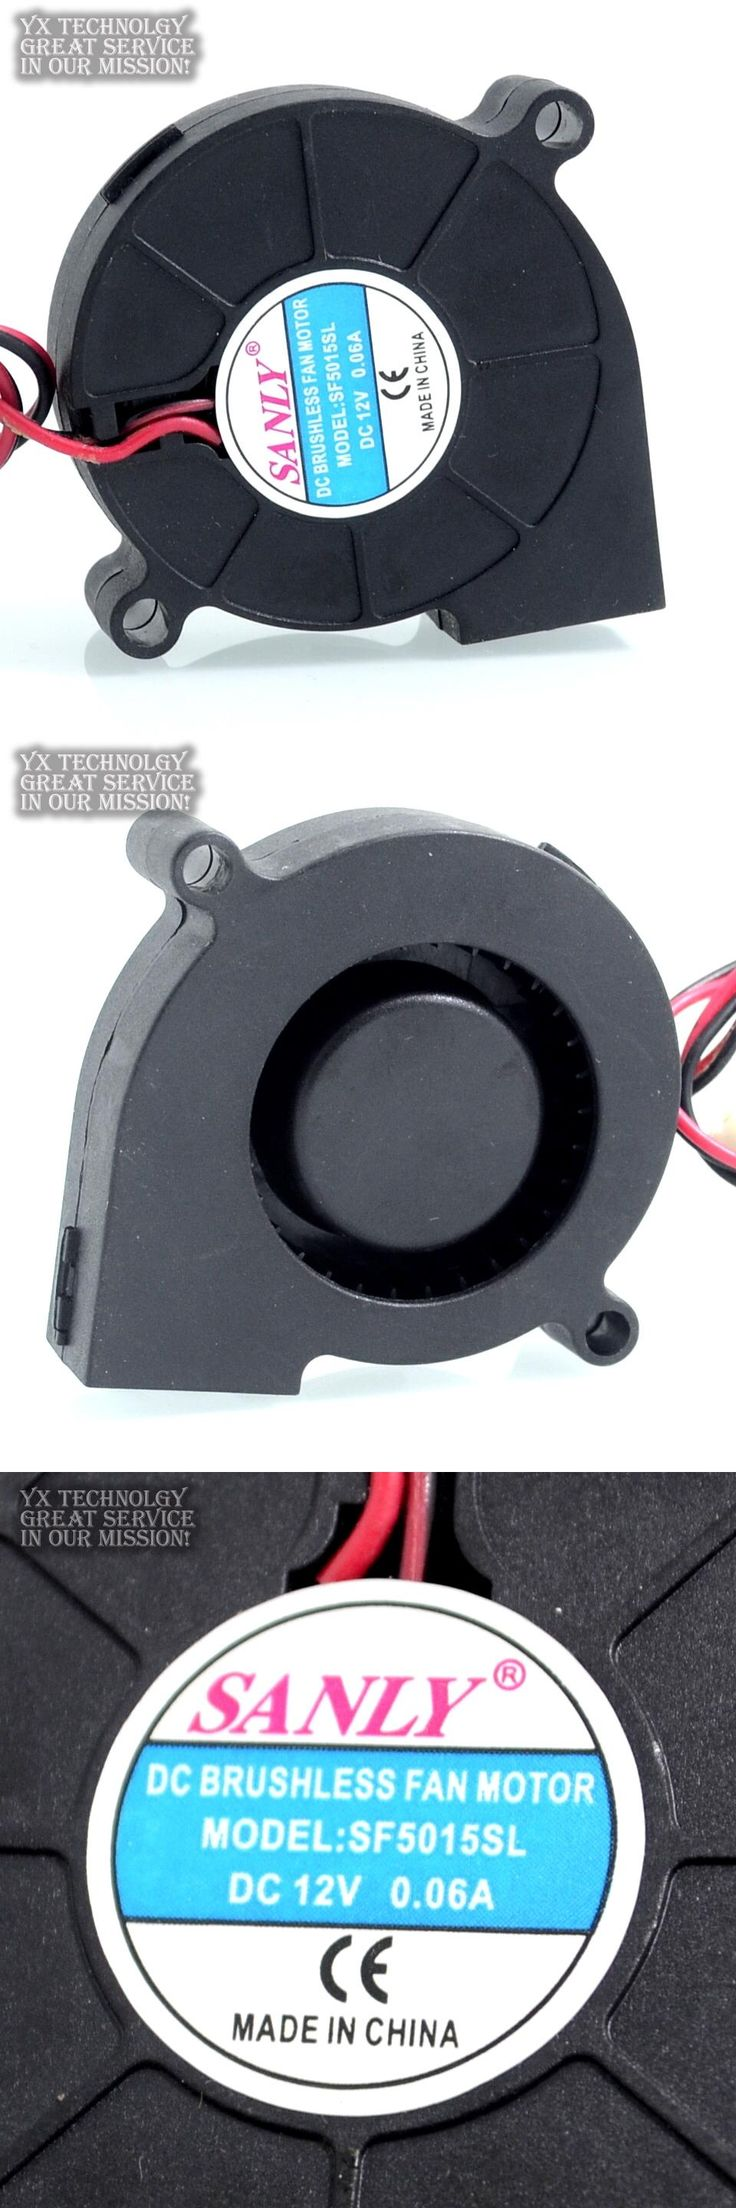 [Visit to Buy] Free Shipping SANLY SF5015SL DC 12V 0.06A Server Cooling Fan Server Centrifugal Blower Fan 2-wire 50x50x15mm #Advertisement